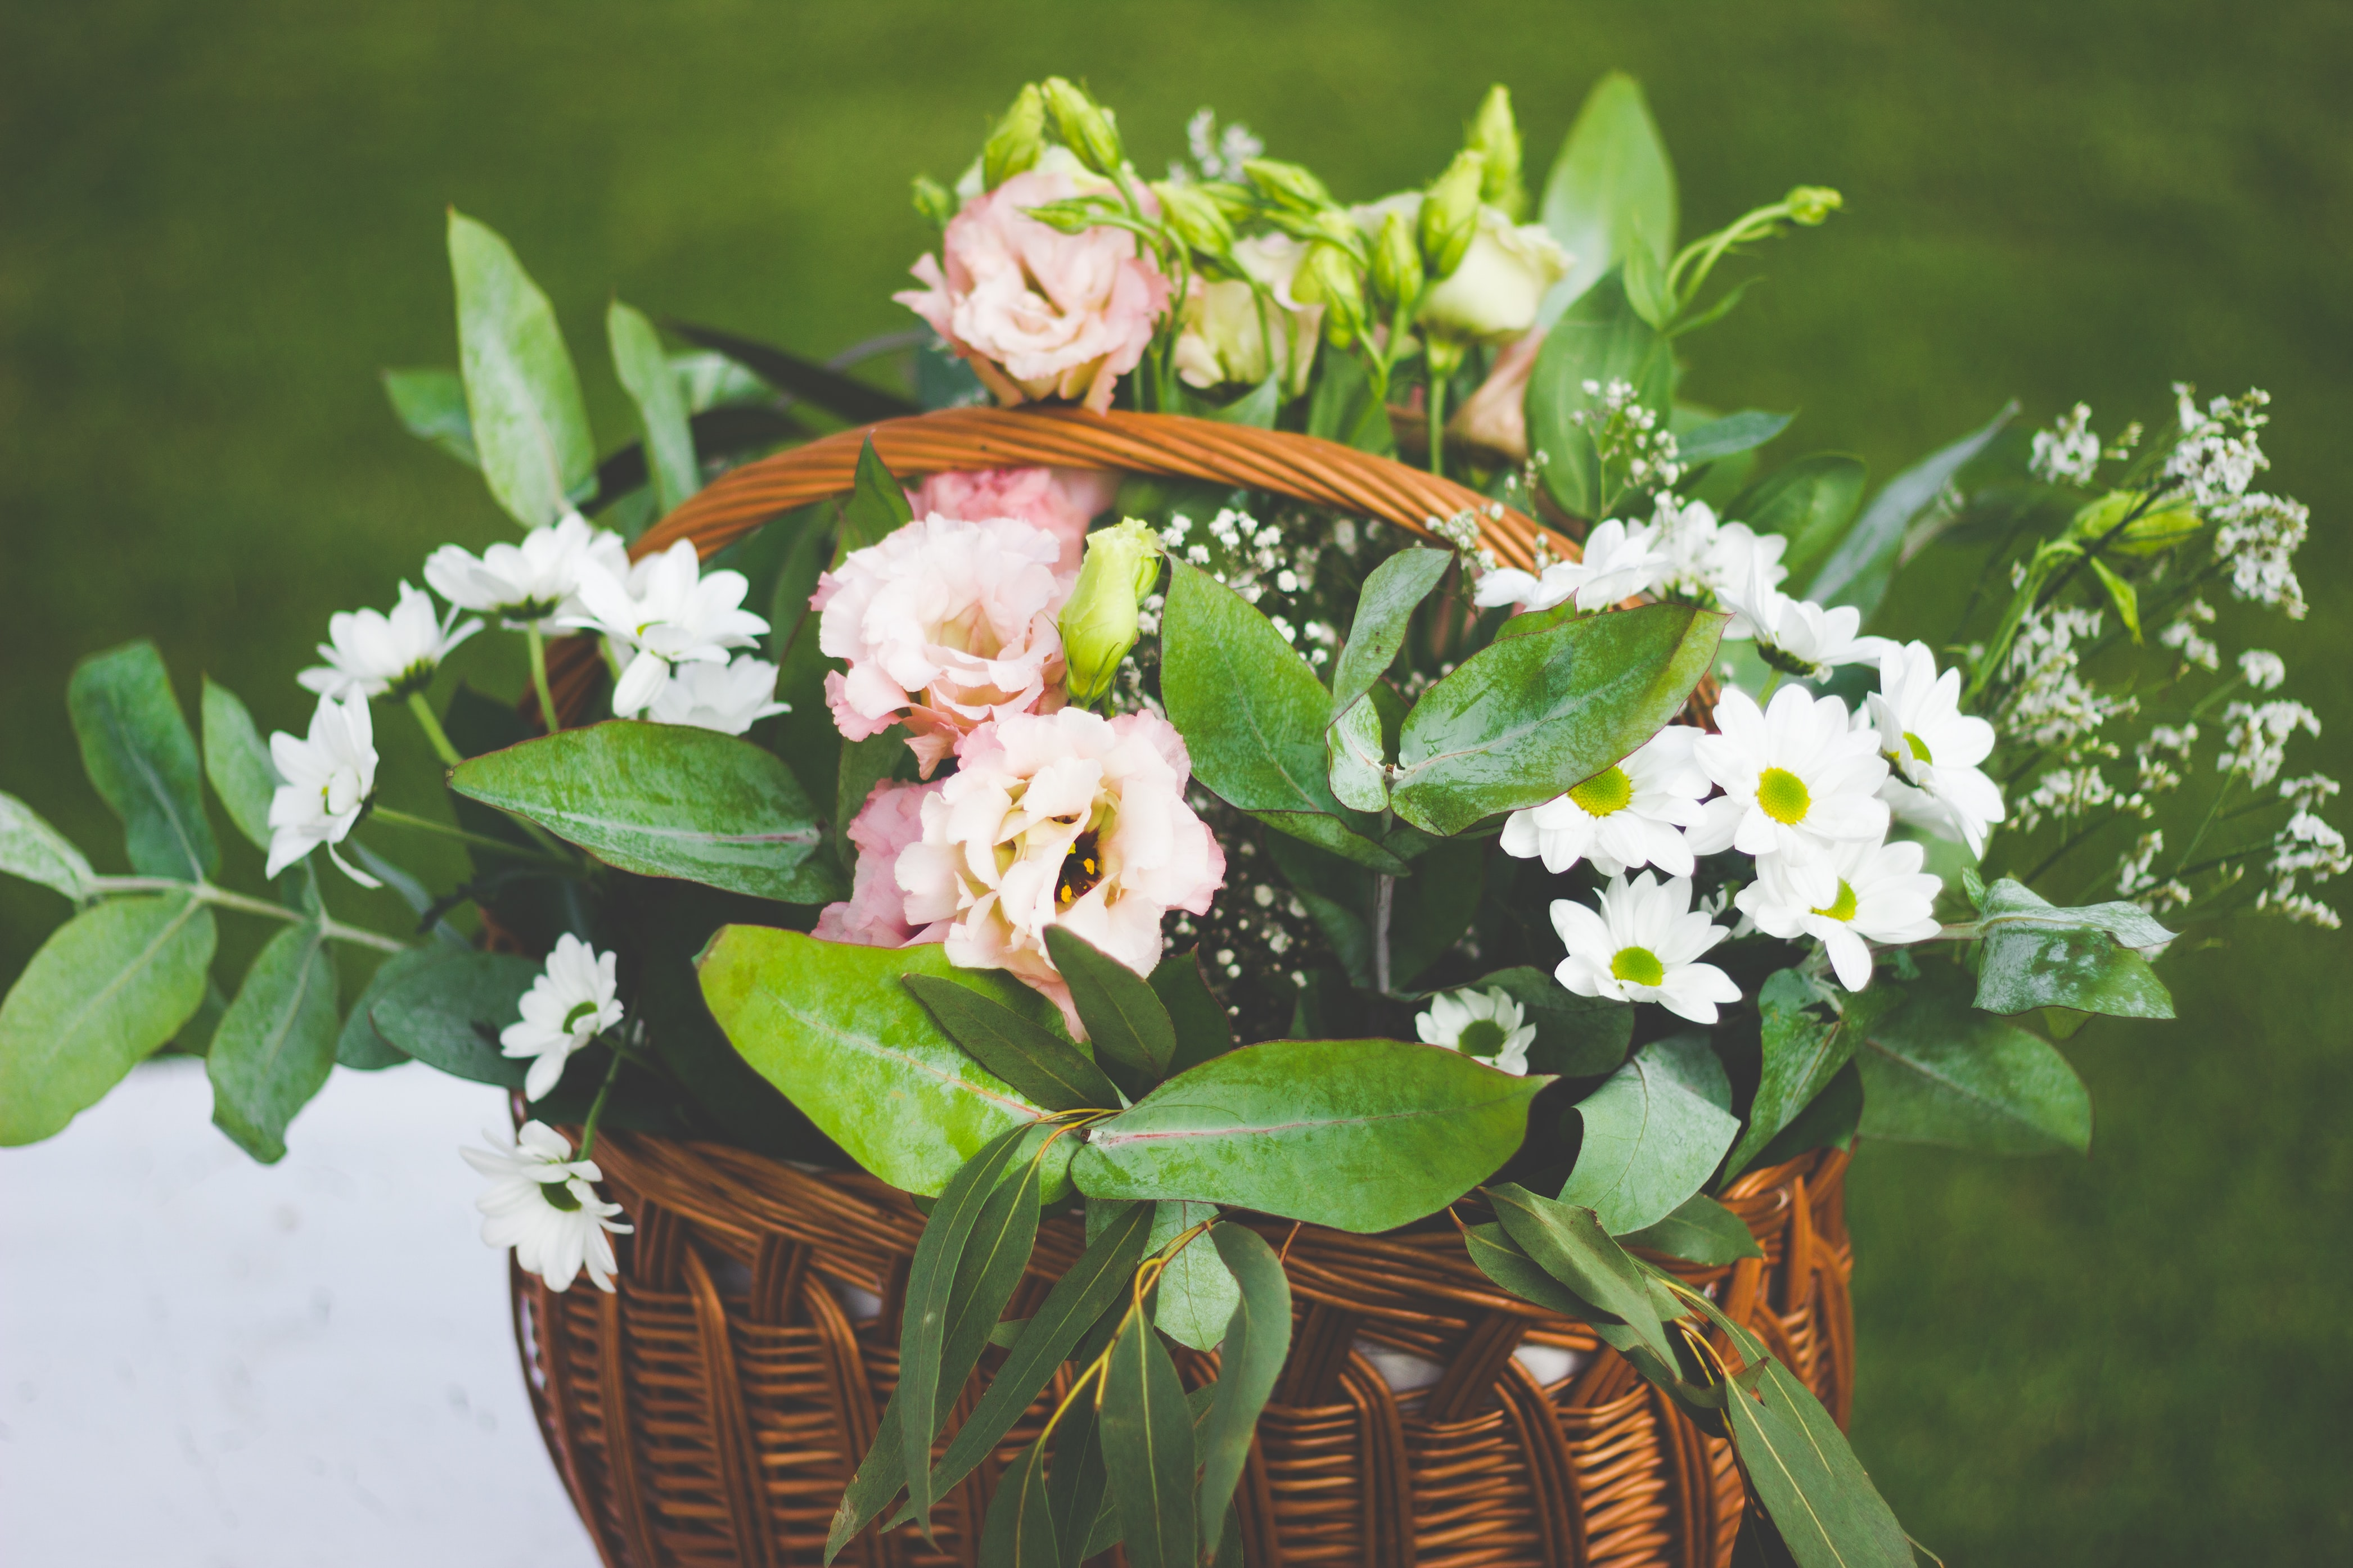 white and pink flowers in wicker basket